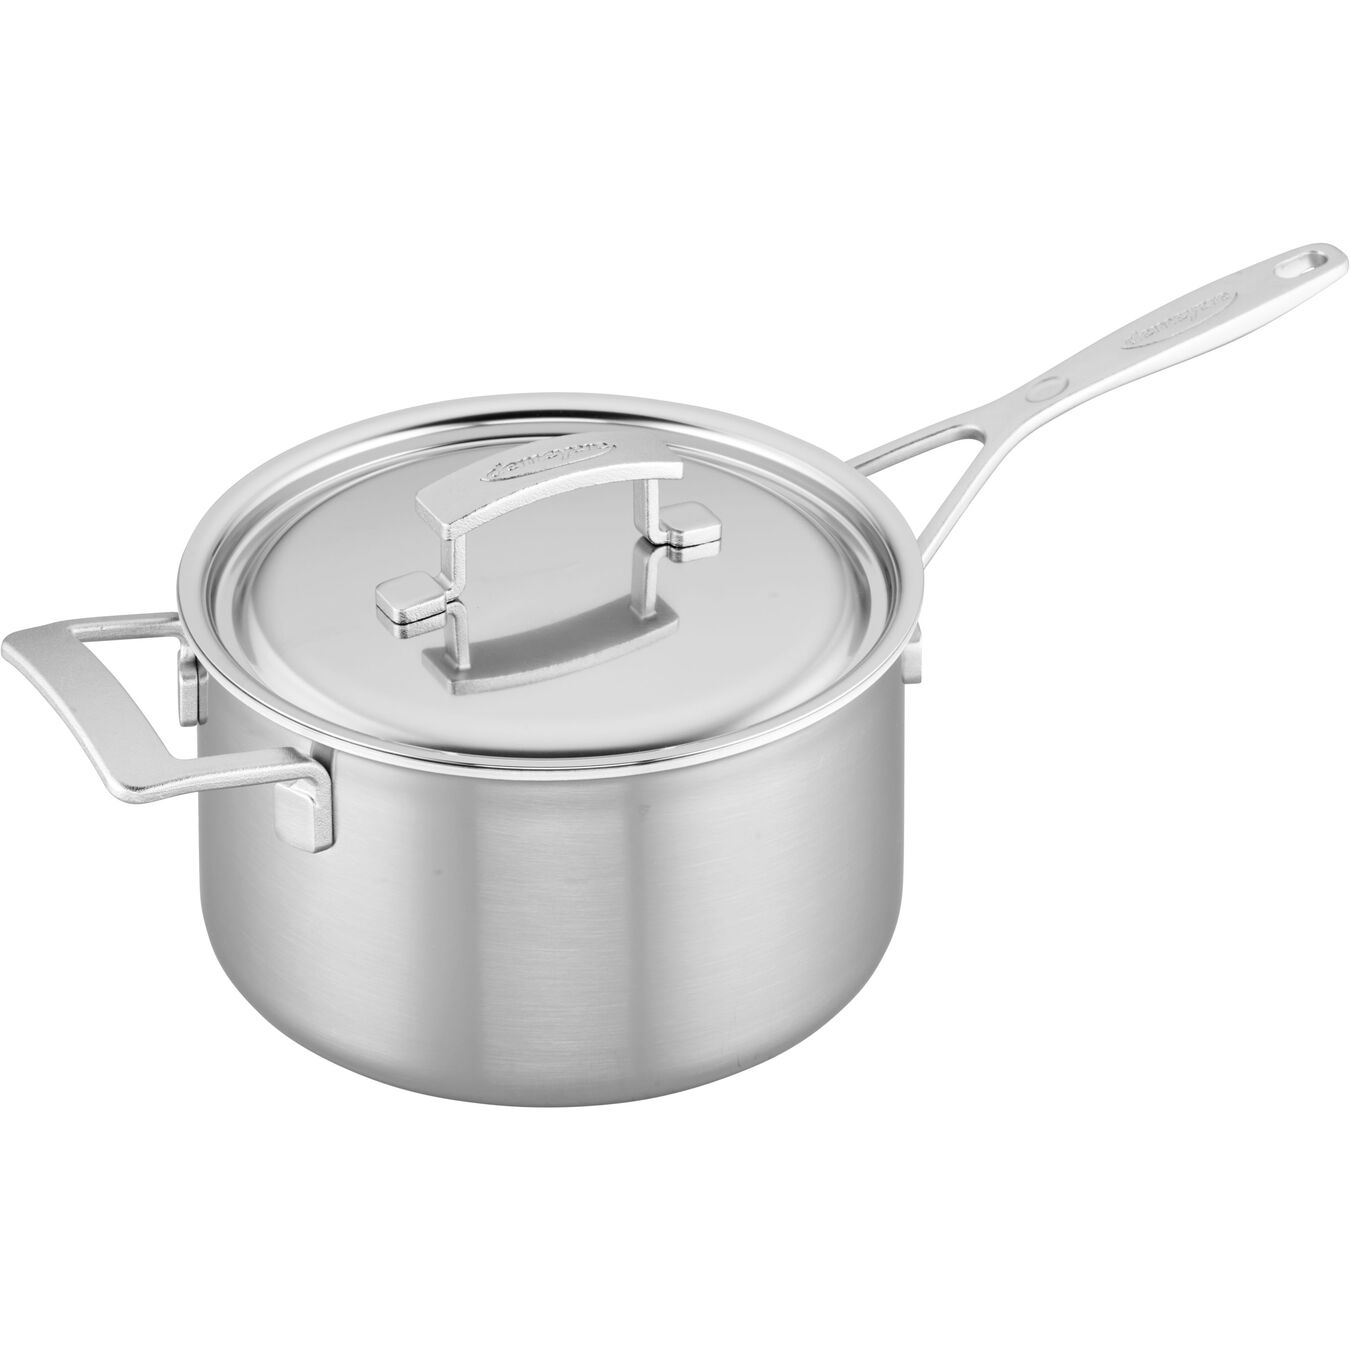 4 qt Saucepan with Helper Handle and lid, 18/10 Stainless Steel ,,large 1